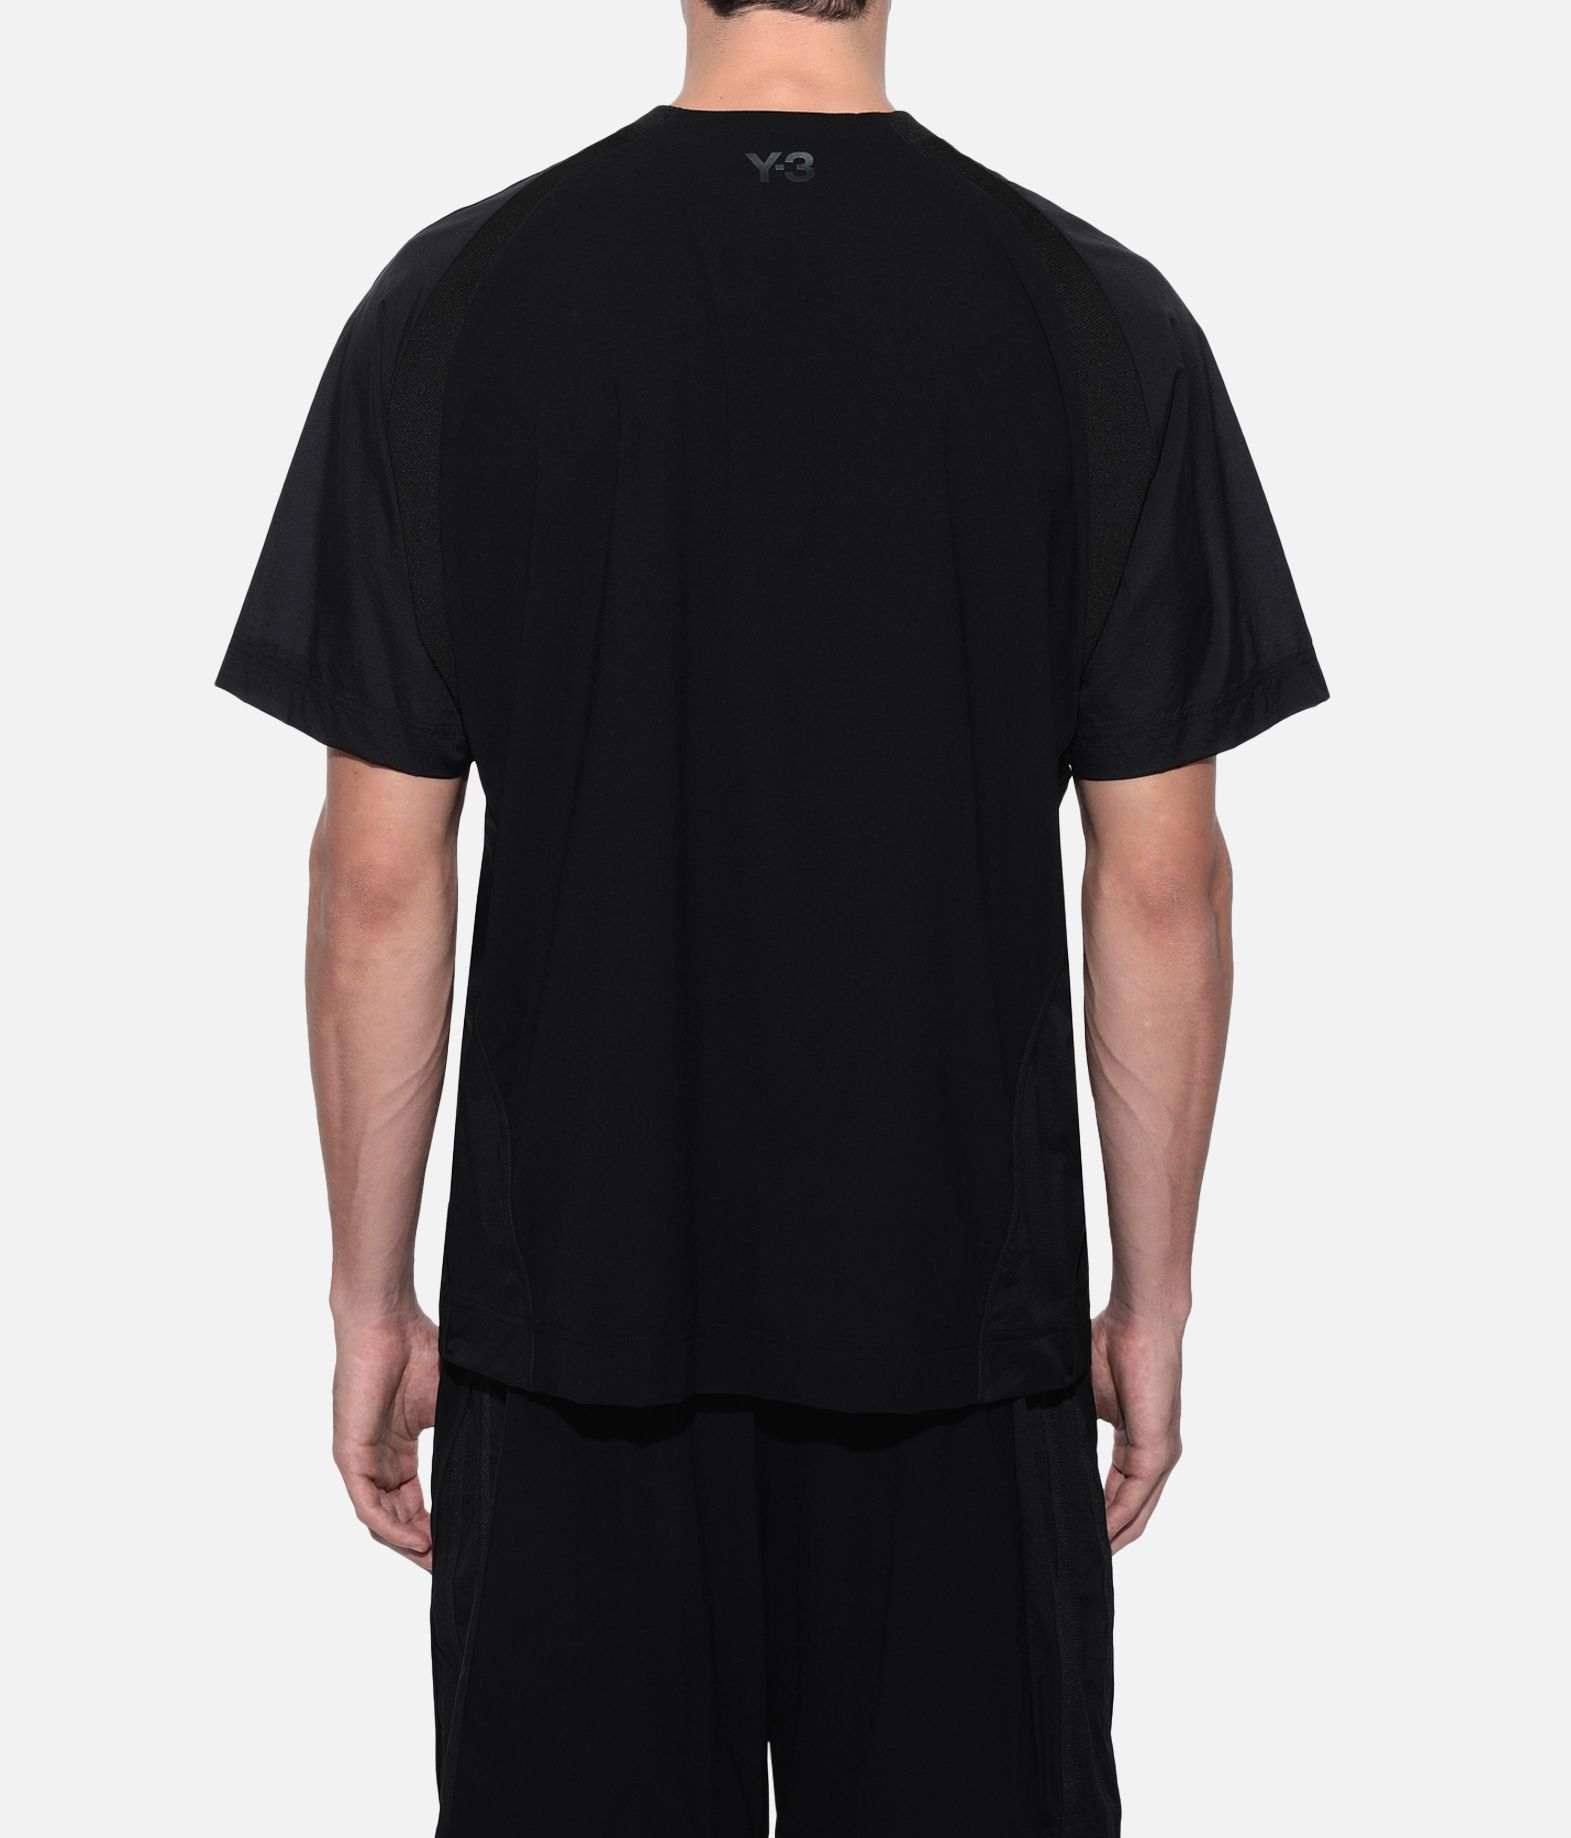 Y-3 Y-3 3-Stripes Material Mix Tee Short sleeve t-shirt Man d